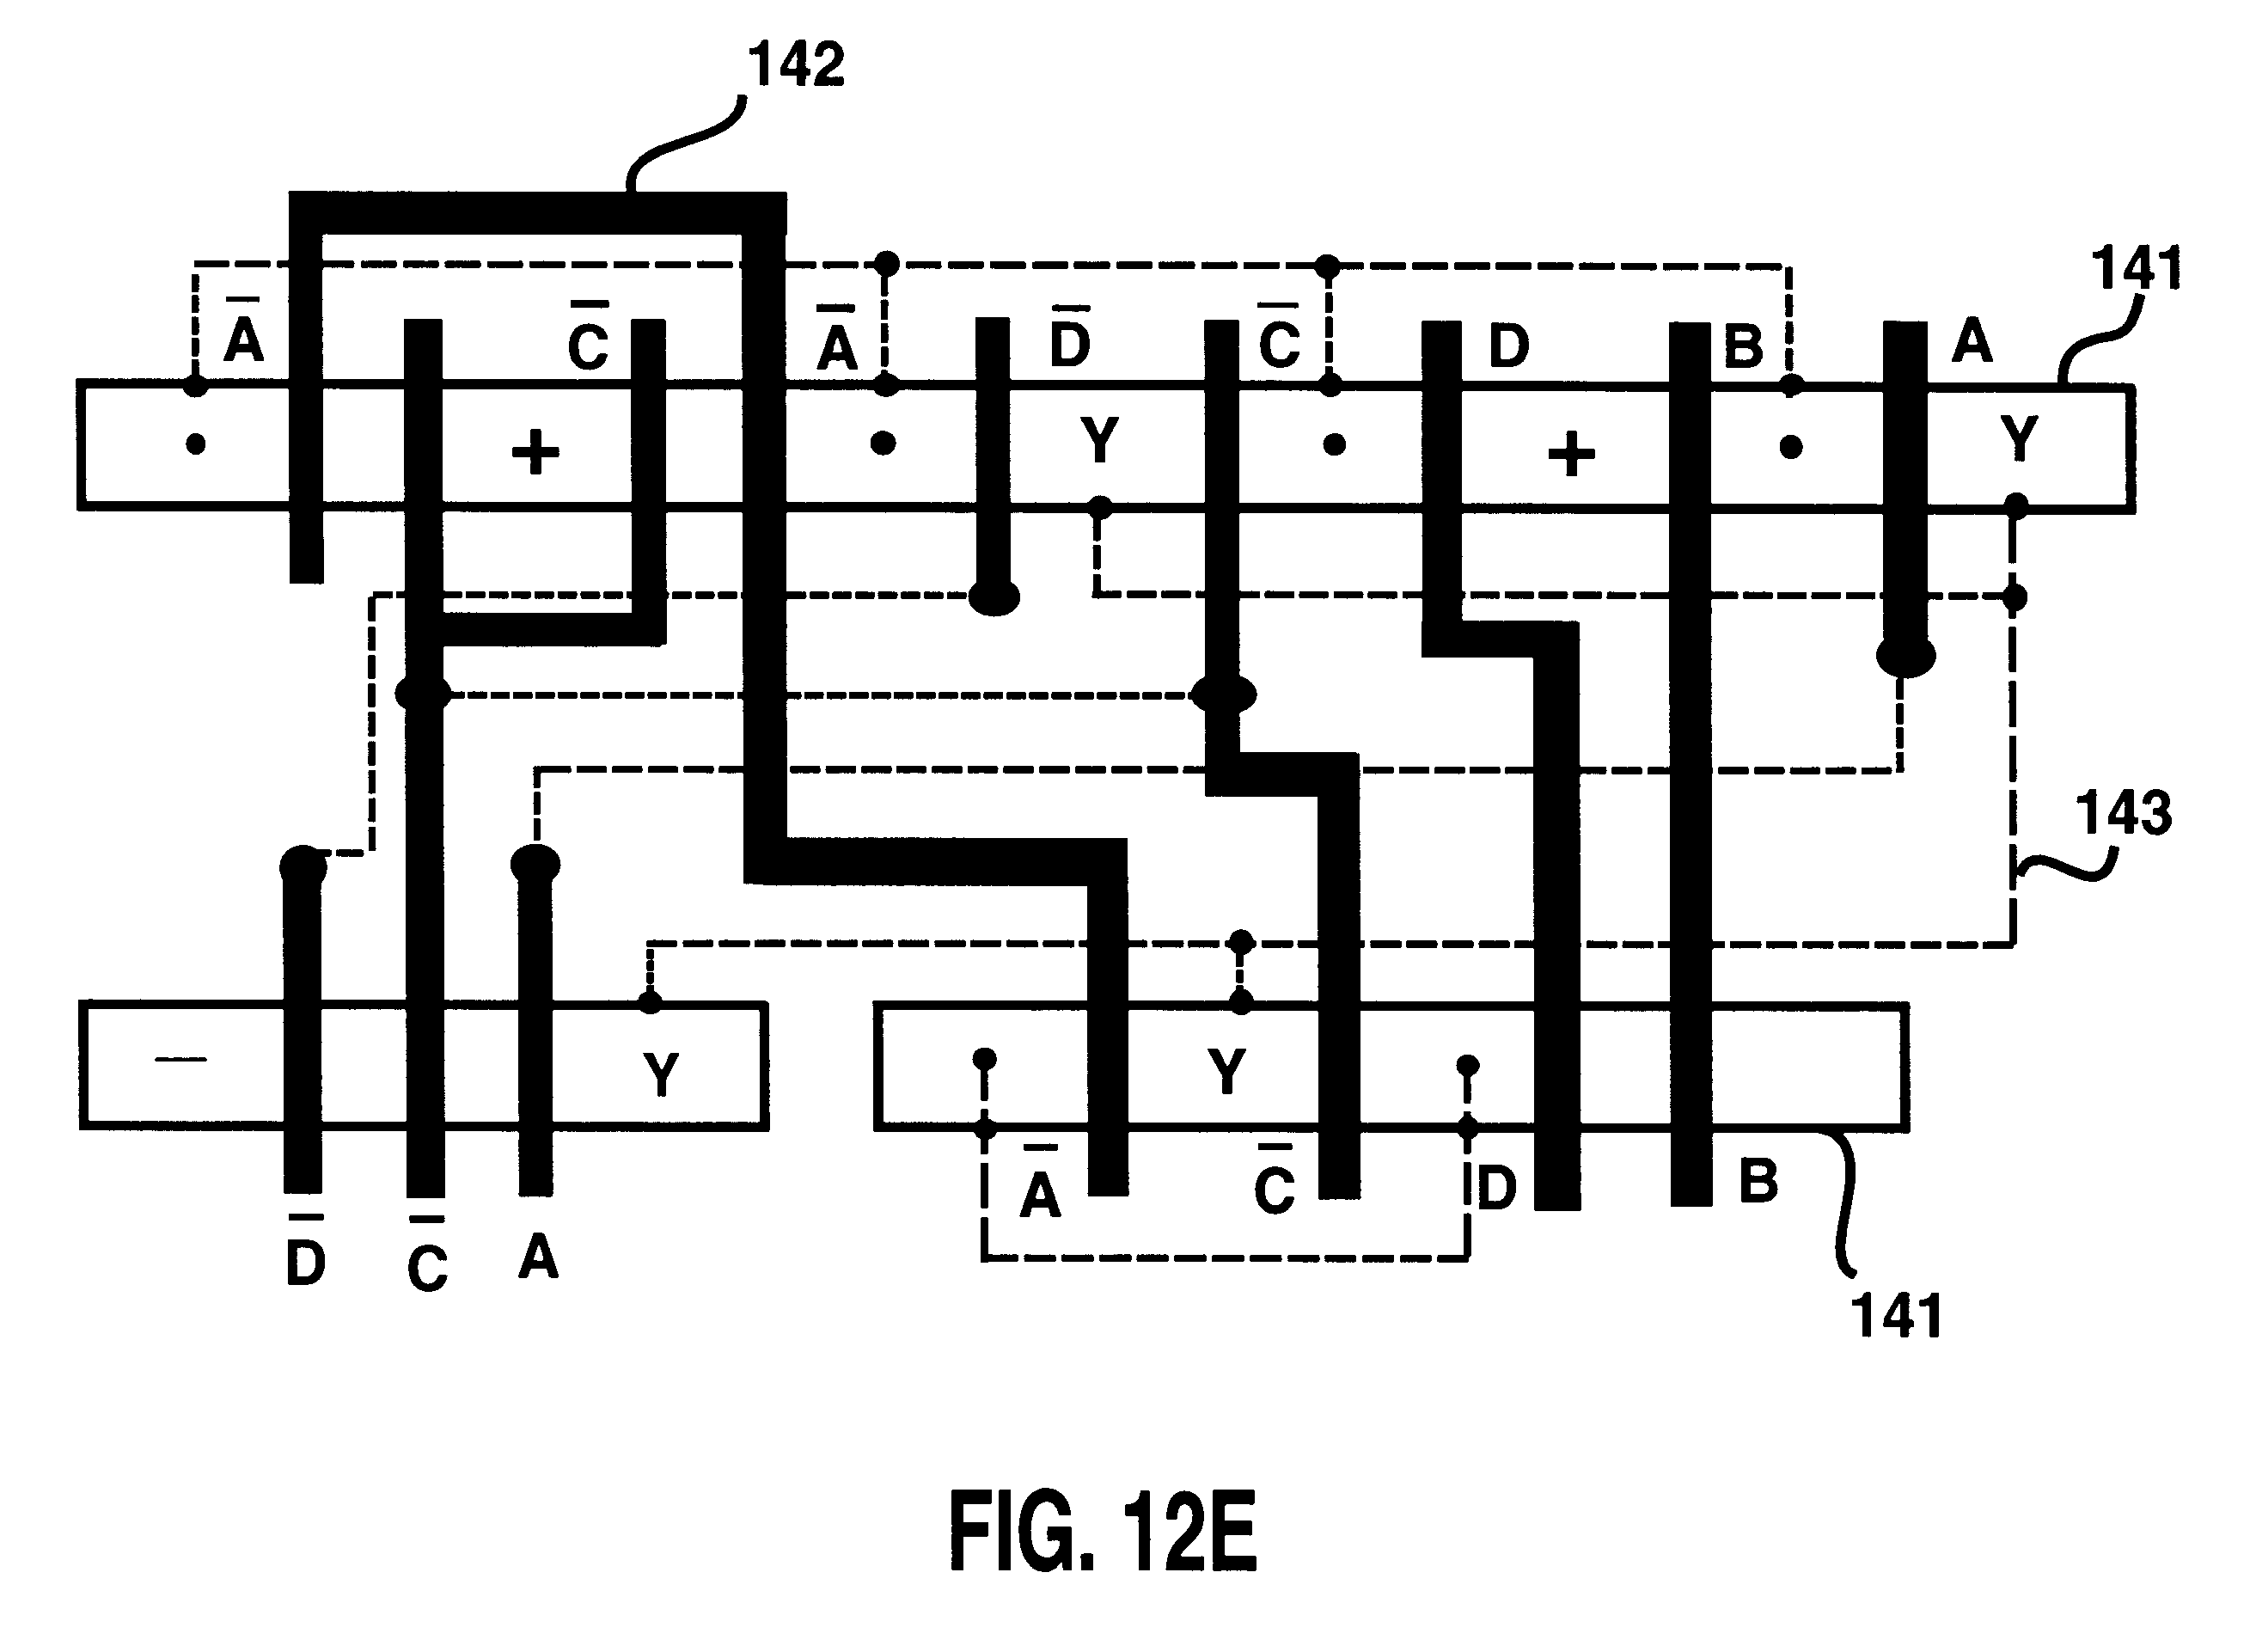 patent us6297668 - serial device compaction for improving integrated circuit layouts